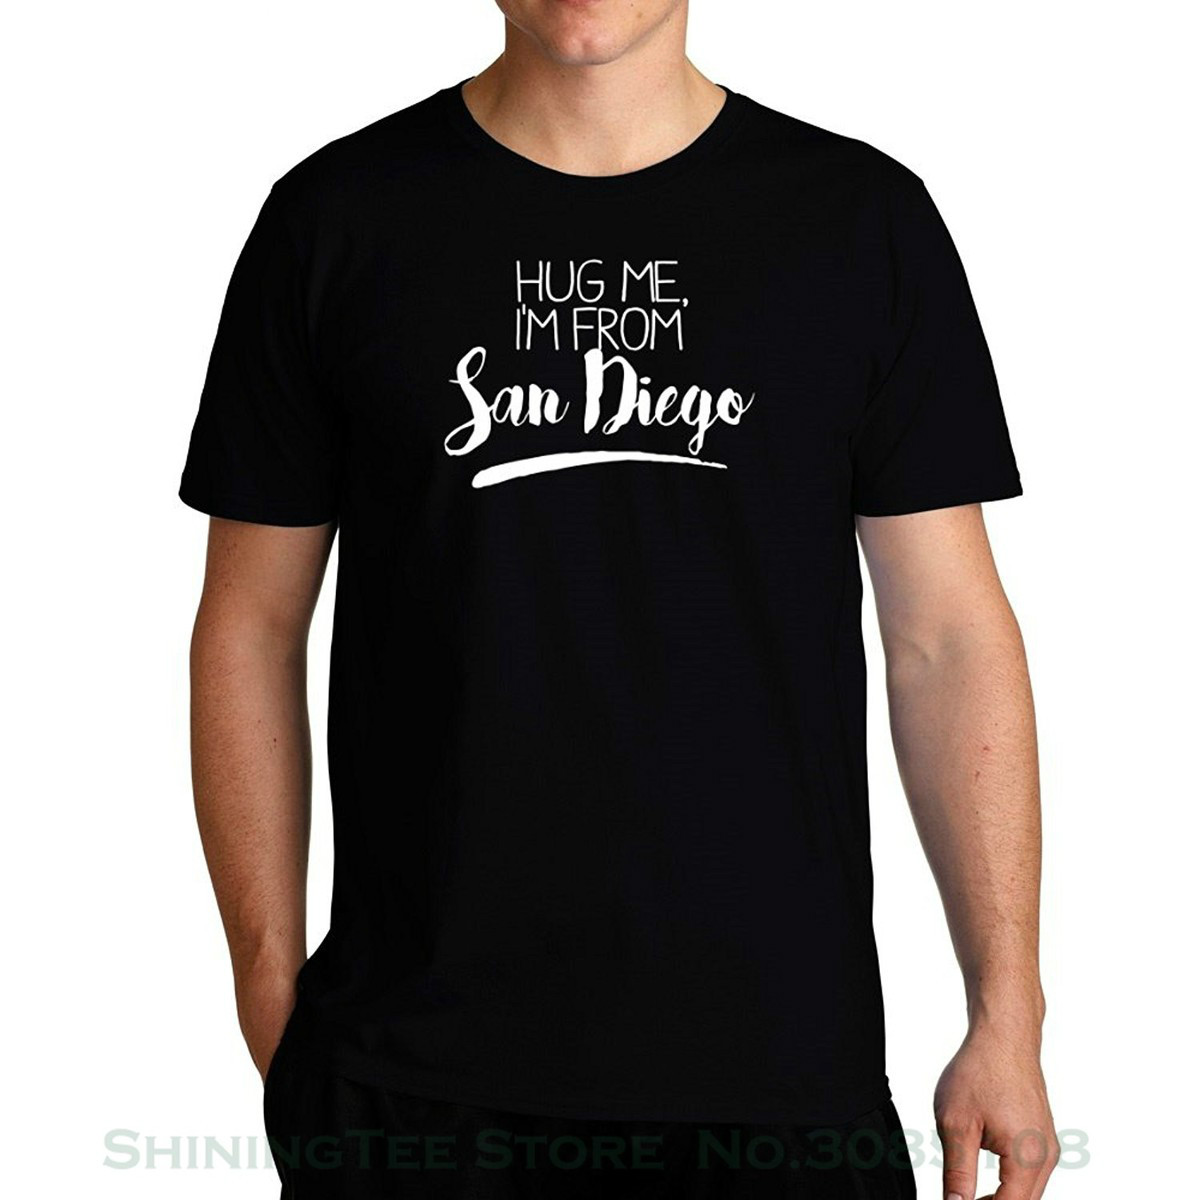 Tshirt O-neck Summer Personality Fashion Men T-shirts  Hug Me I'm From San Diego 2 T-shirt Casual  Cotton  Broadcloth